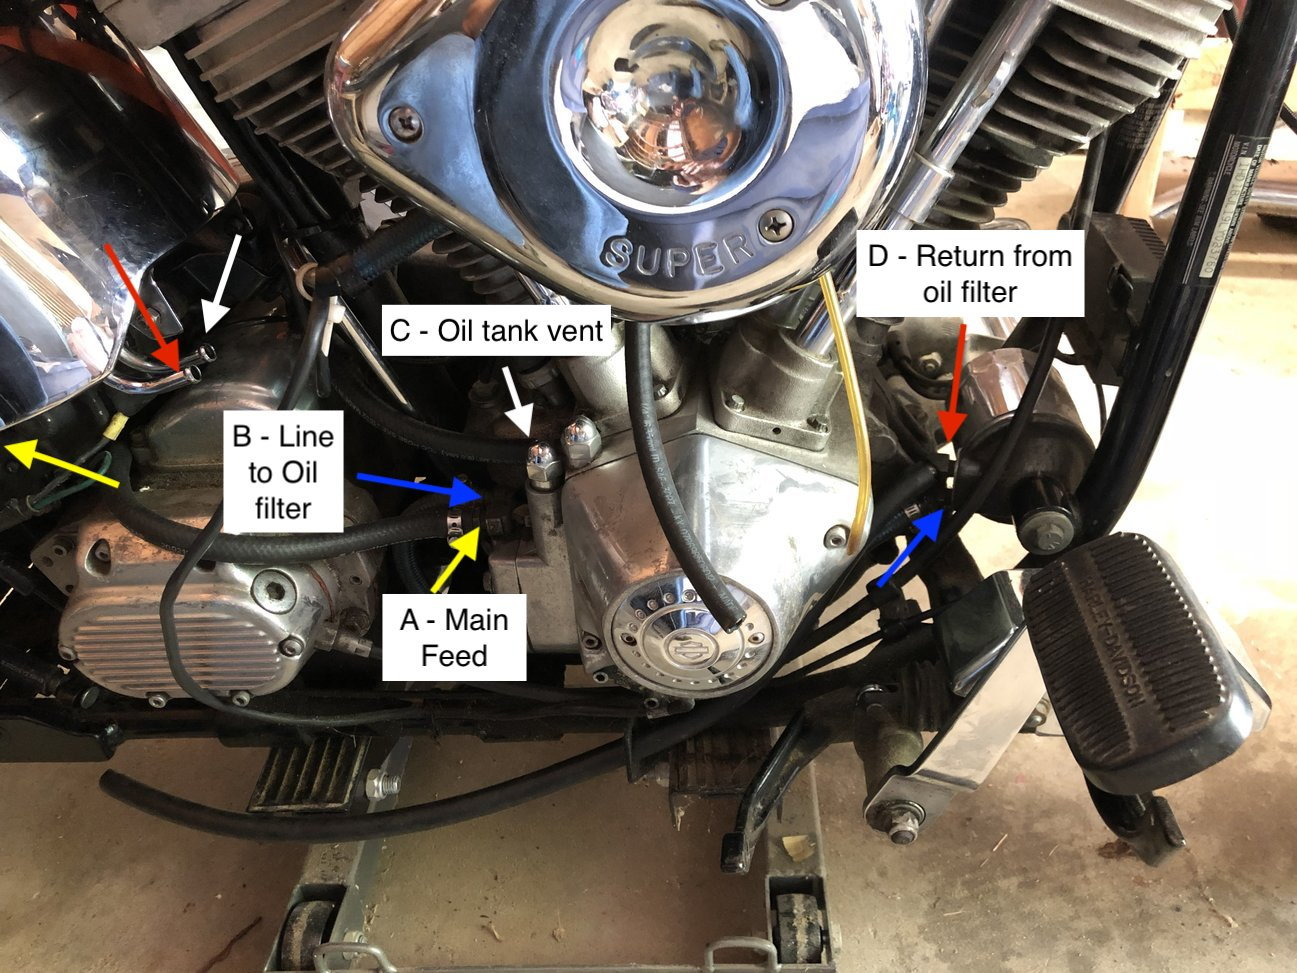 hight resolution of harley davidson oil system diagram wiring diagram datasource wiring diagram in addition evo oil line routing diagram on harley evo